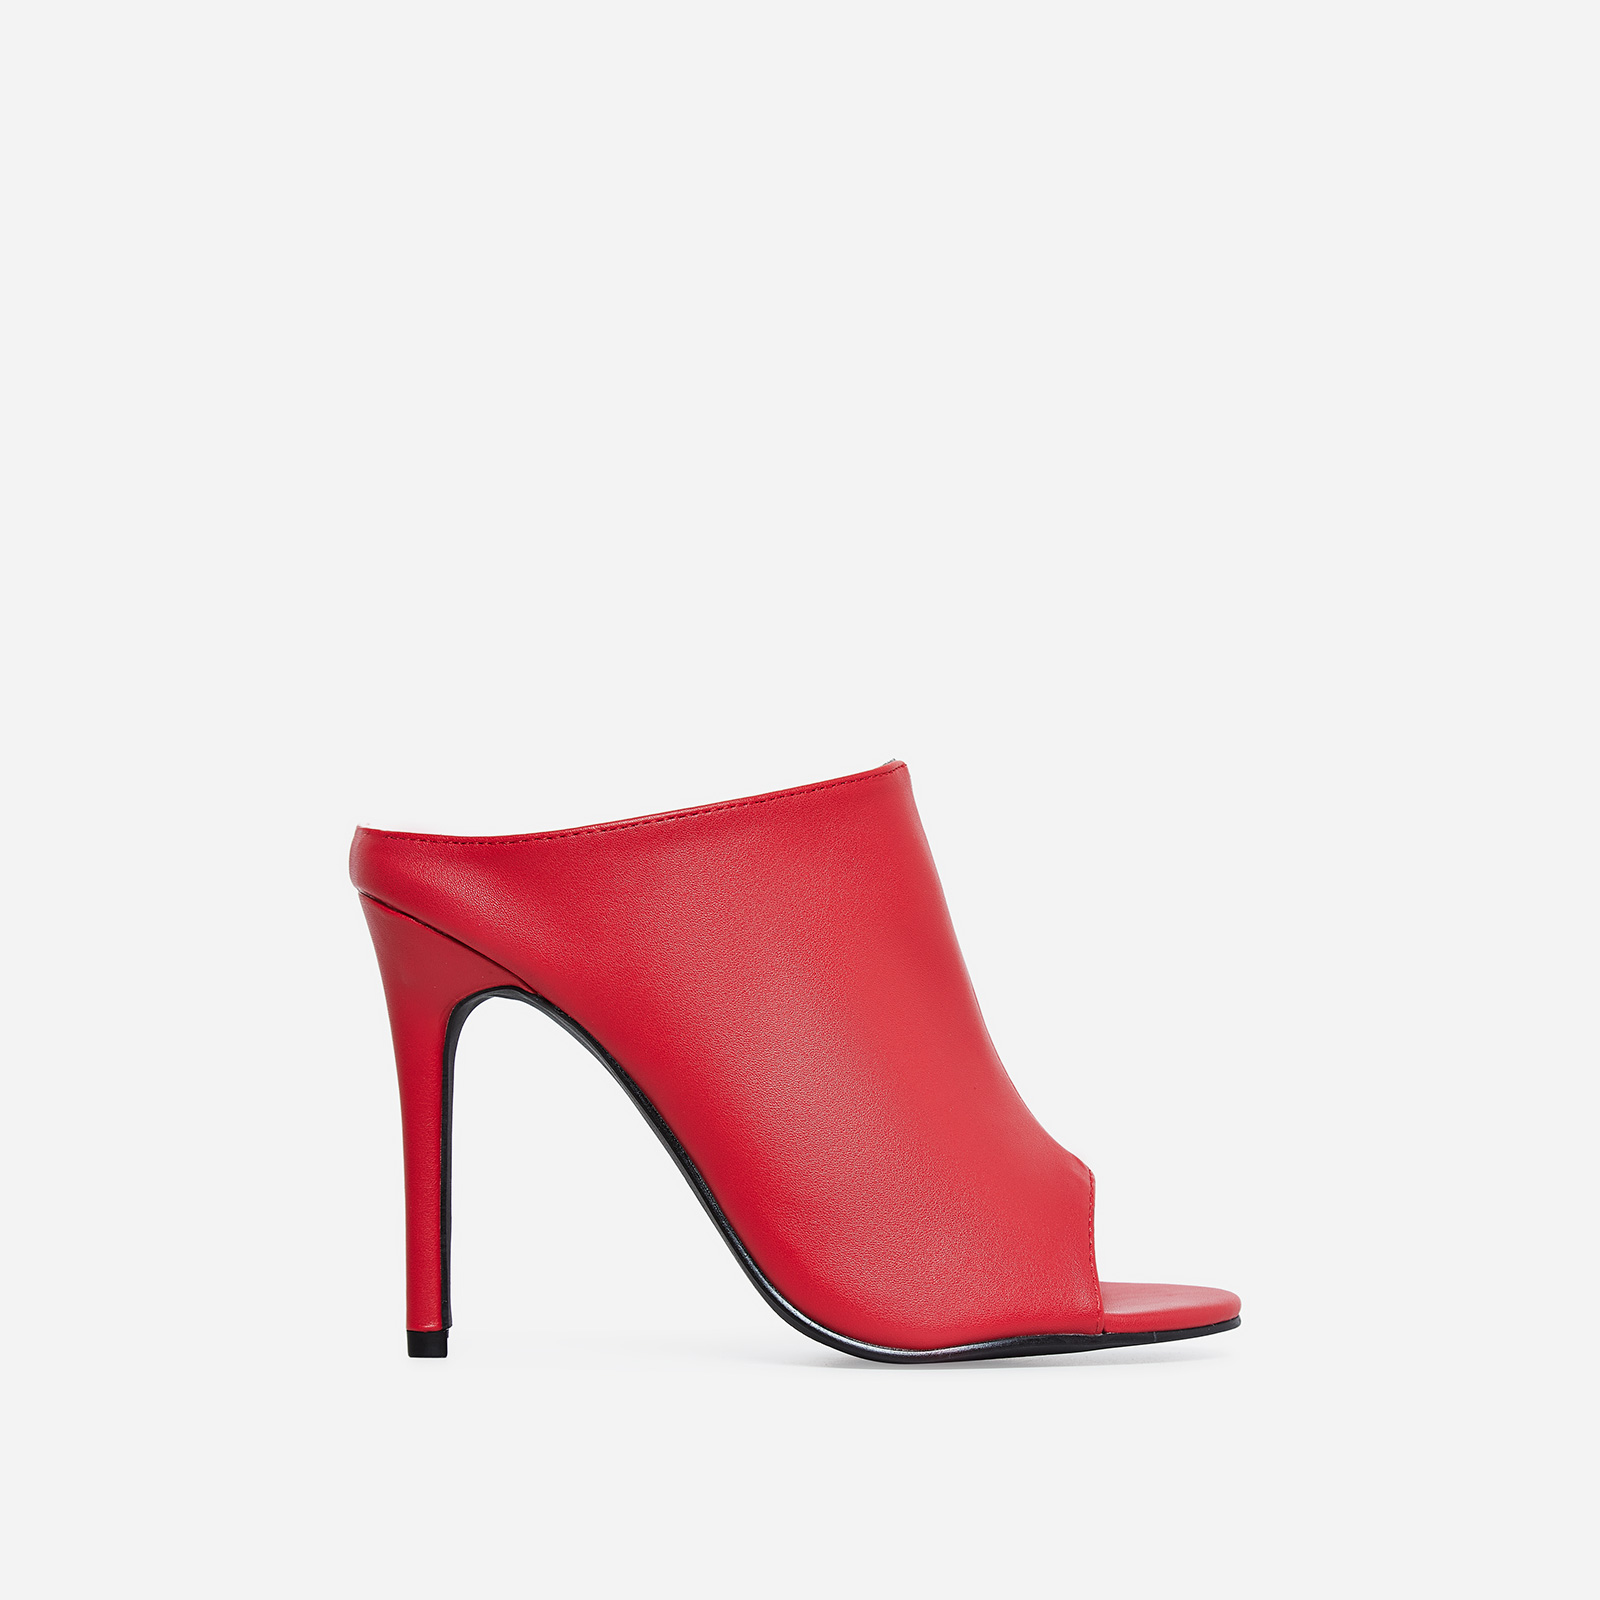 Downtown Peep Toe Mule In Red Faux Leather